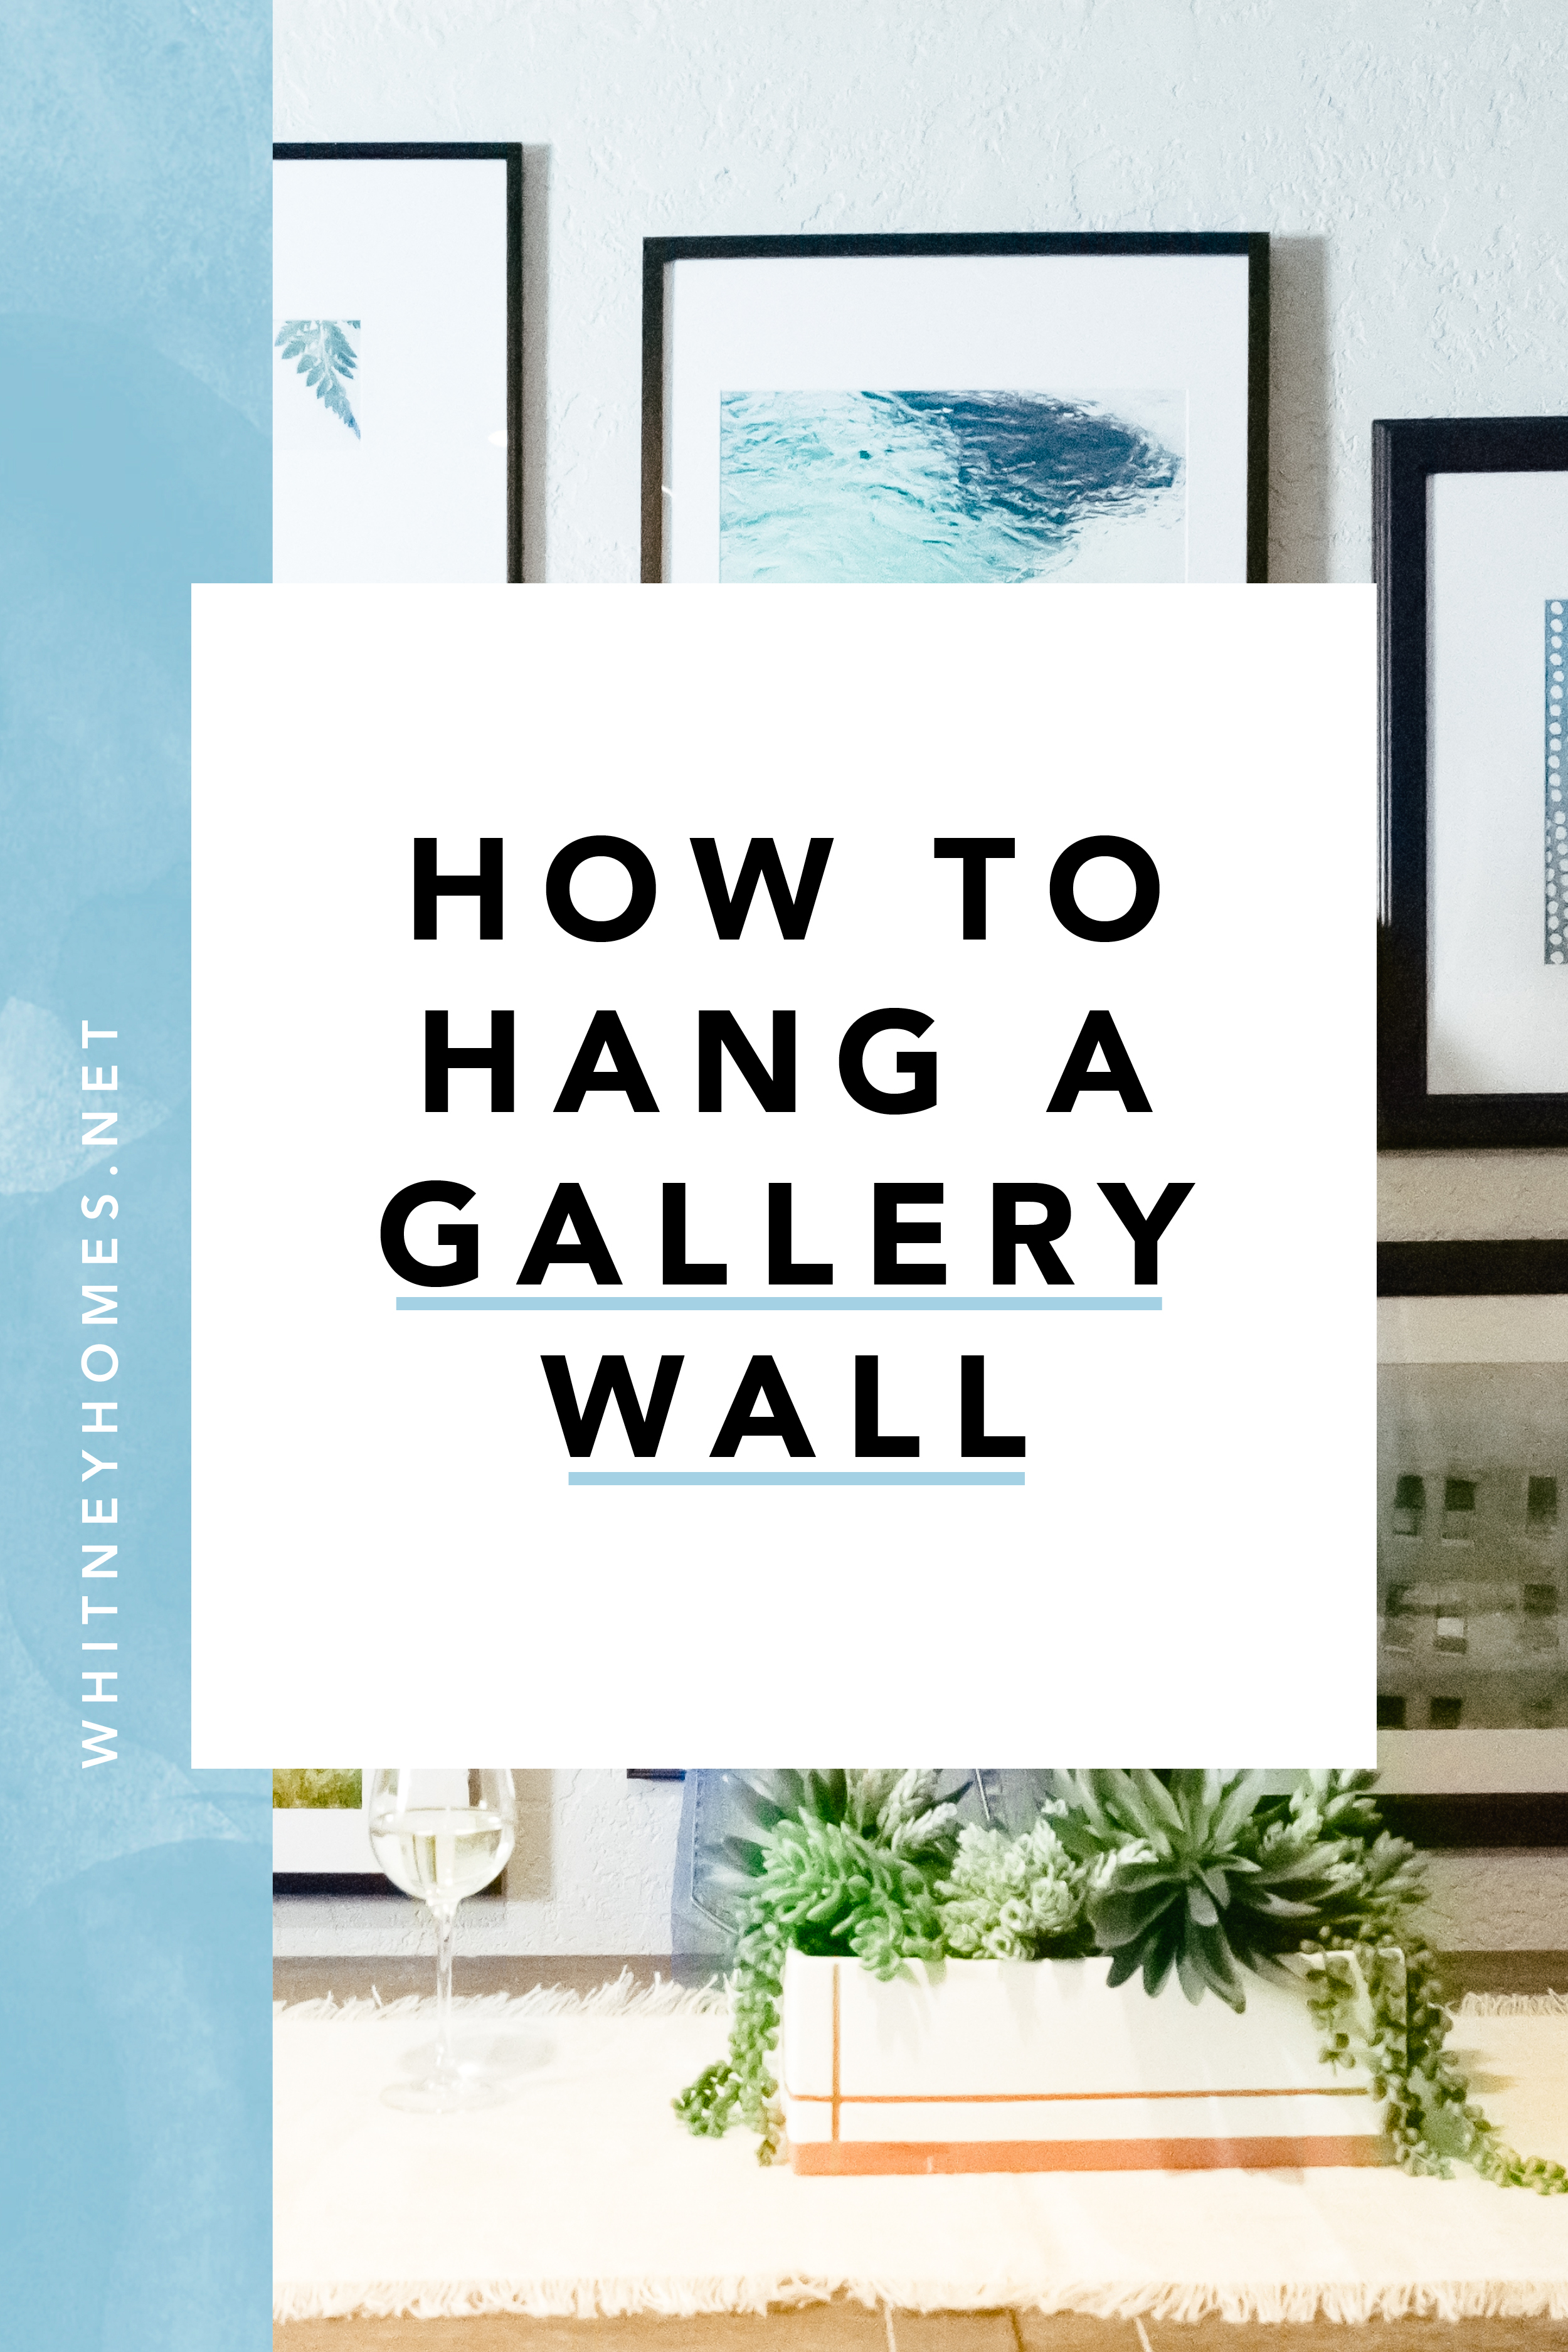 180806 Anatomy of a Gallery Wall18.jpg